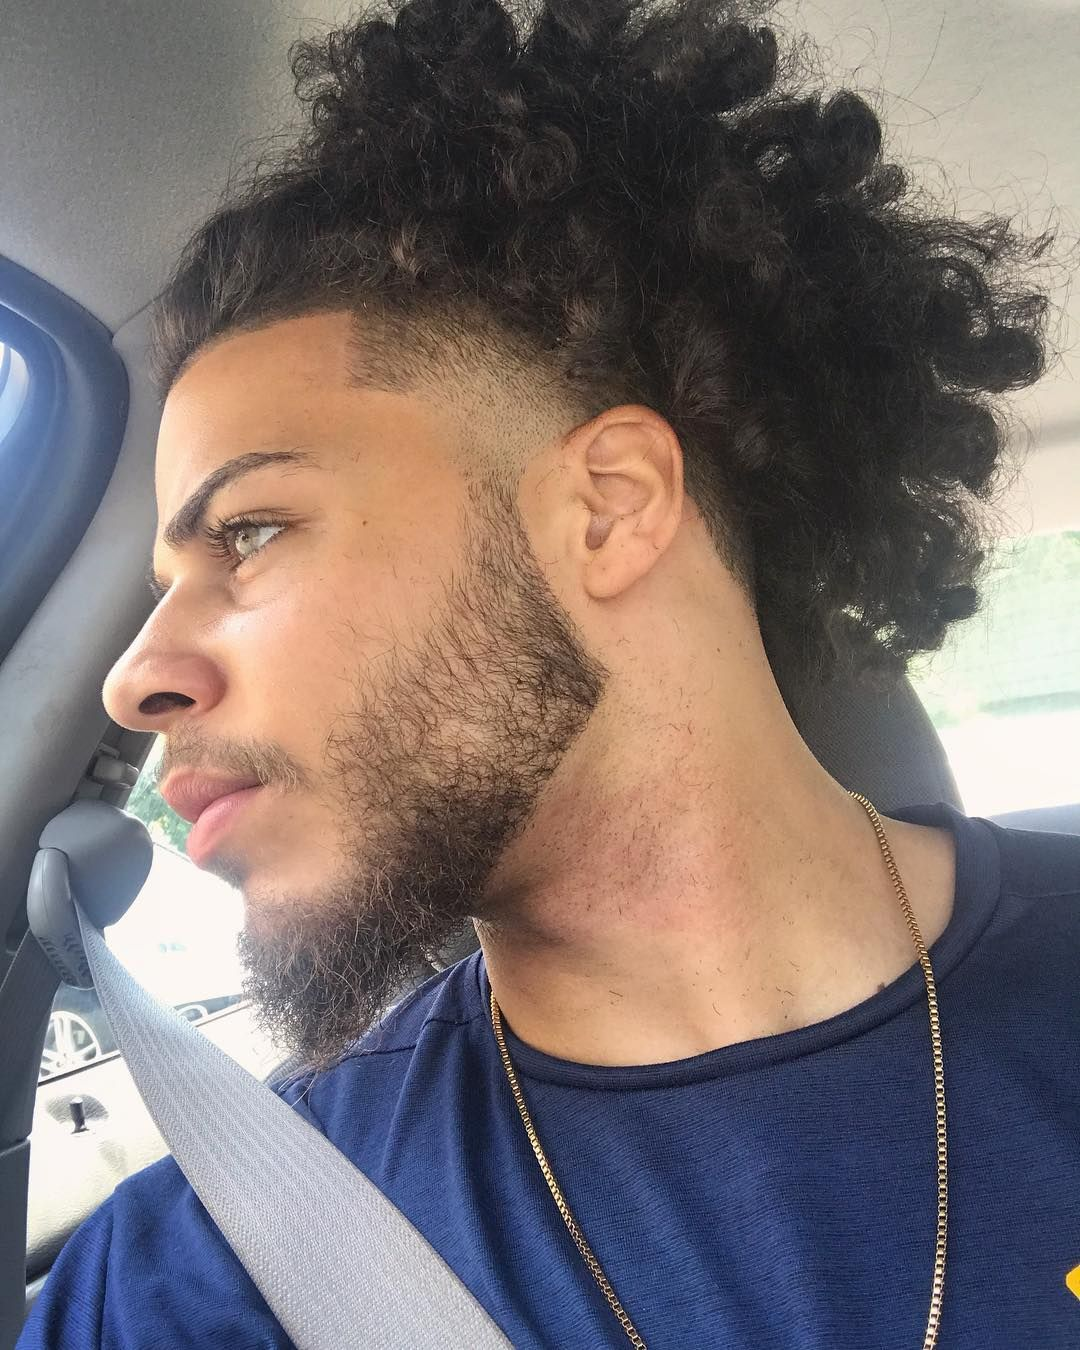 Damon Gang (@damoncrodgers) On